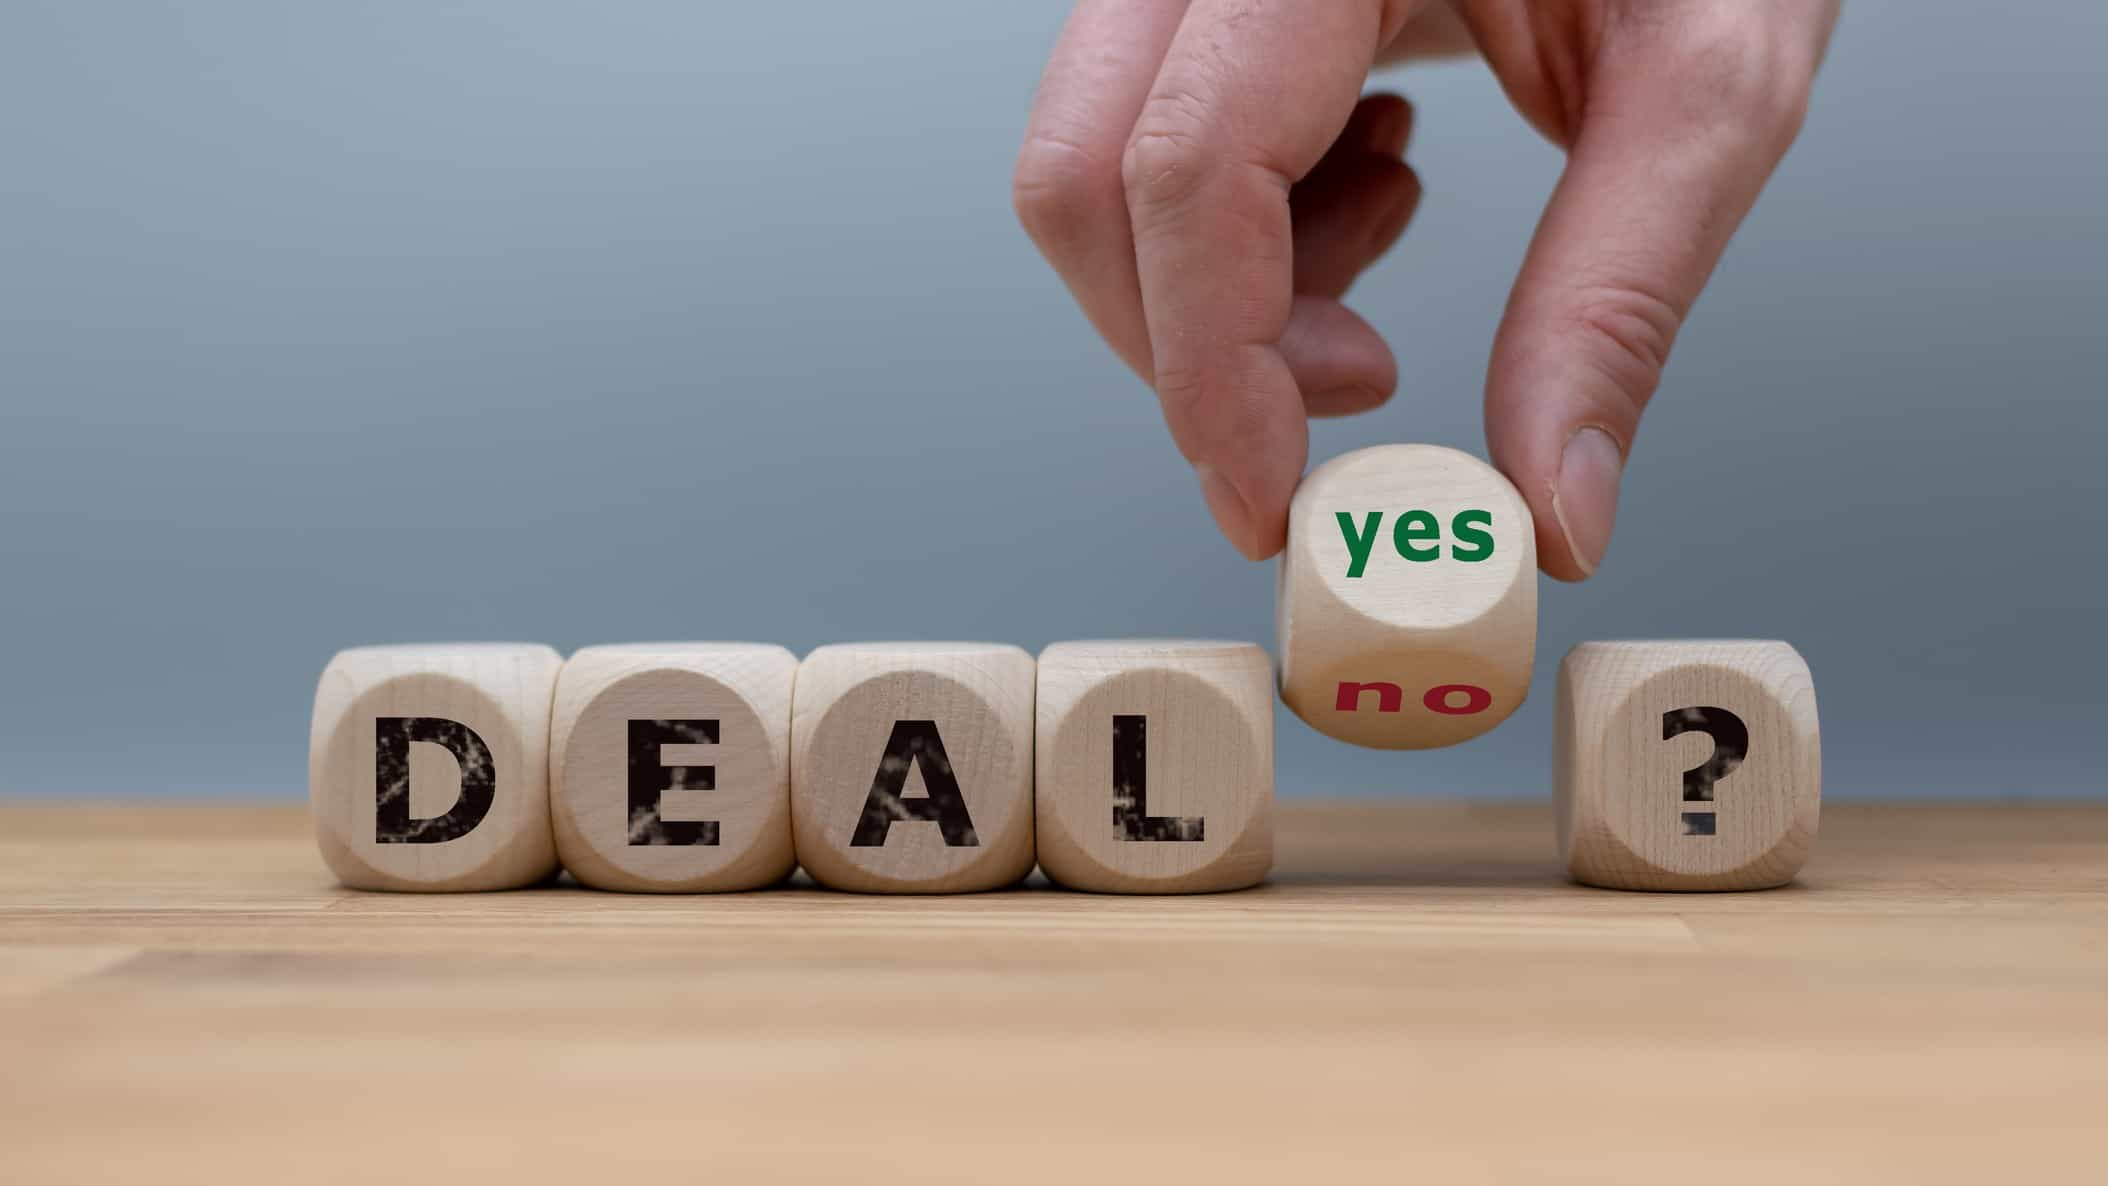 wooden blocks spelling deal with one block saying yes and no representing wesfarmers share price